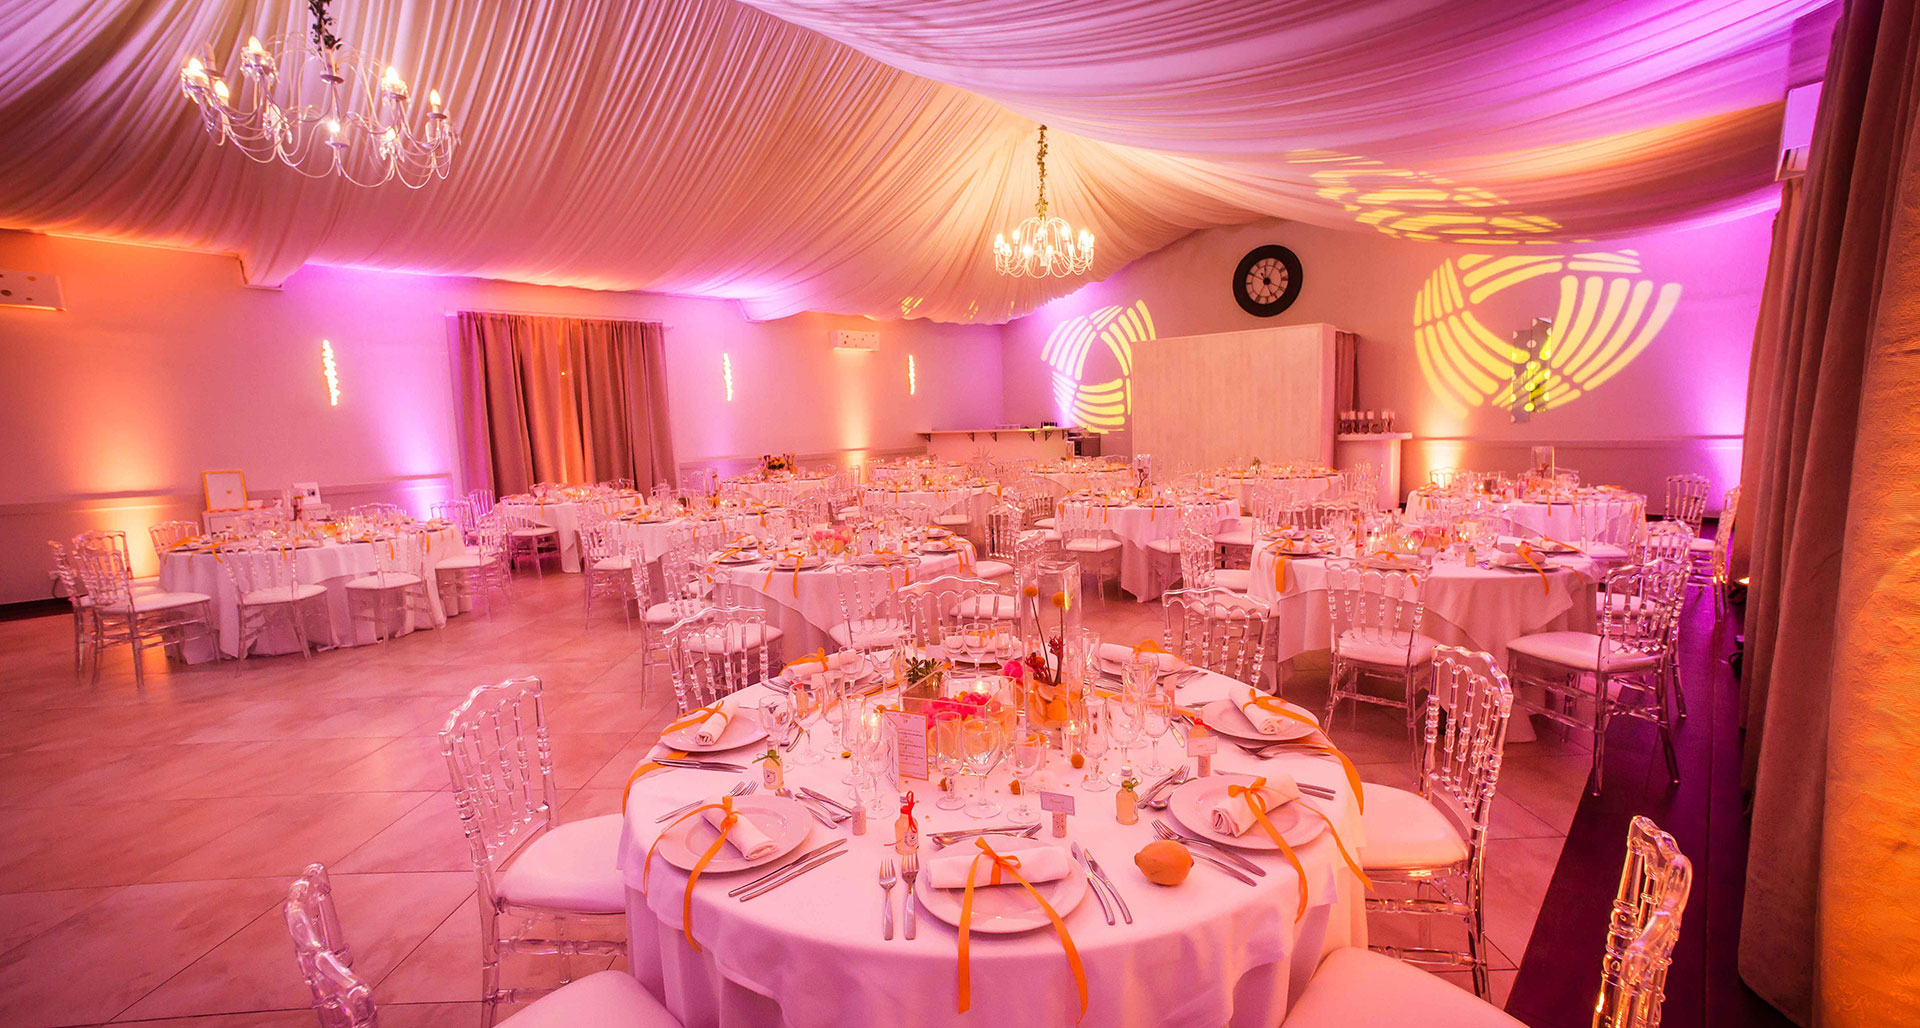 Location Salle Mariage 06 Var 83 Cannes Nice Antibes 3